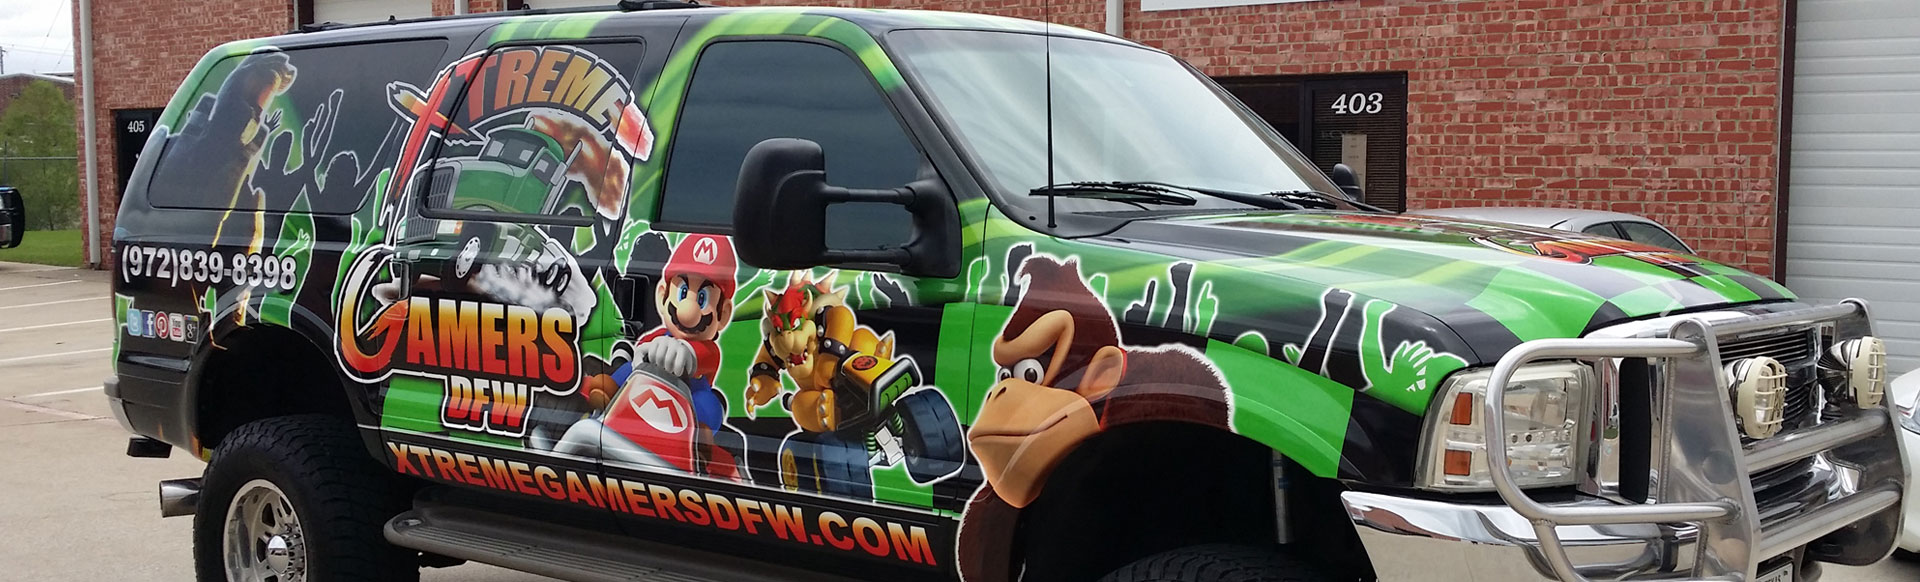 Truck Wraps and Truck Graphics in Plano TX, Carrollton TX, Dallas TX, DFW